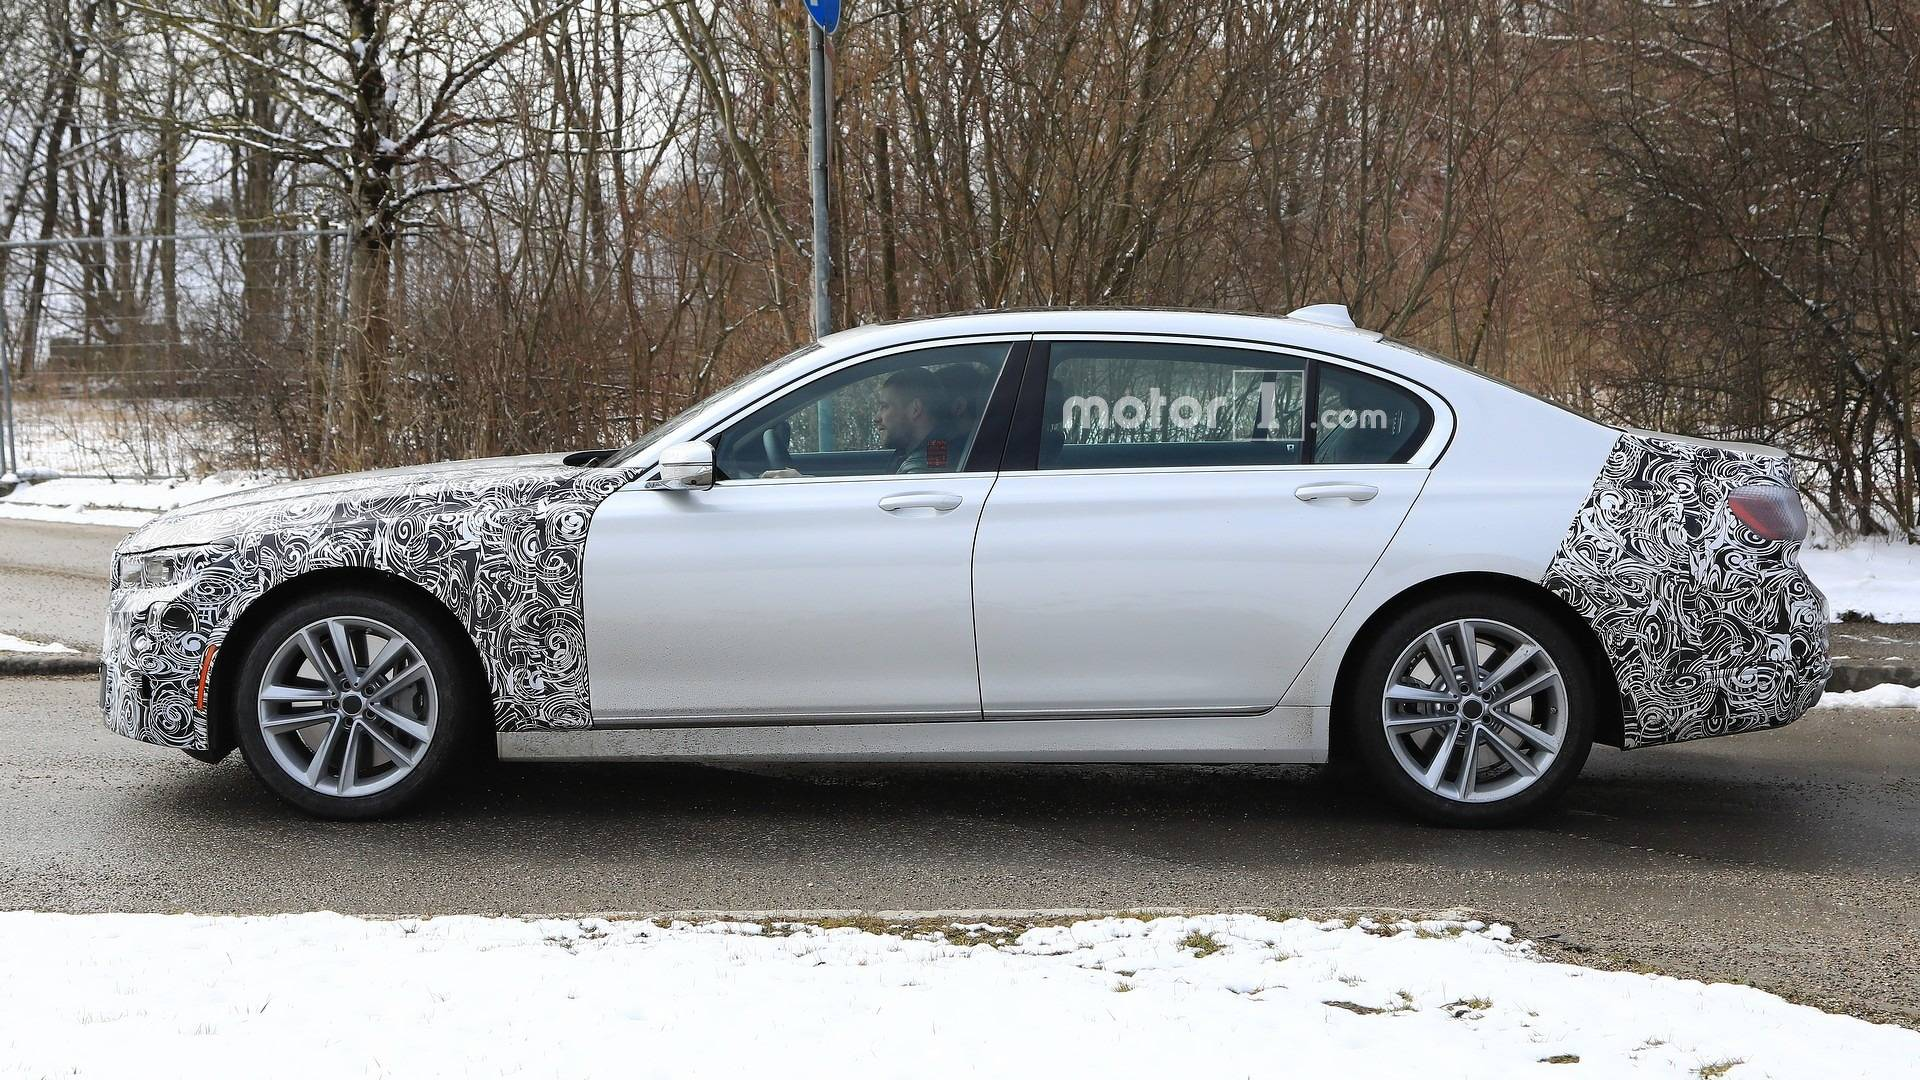 Refreshed Bmw 7 Series Spied Cruising Shows Off Bigger Grille